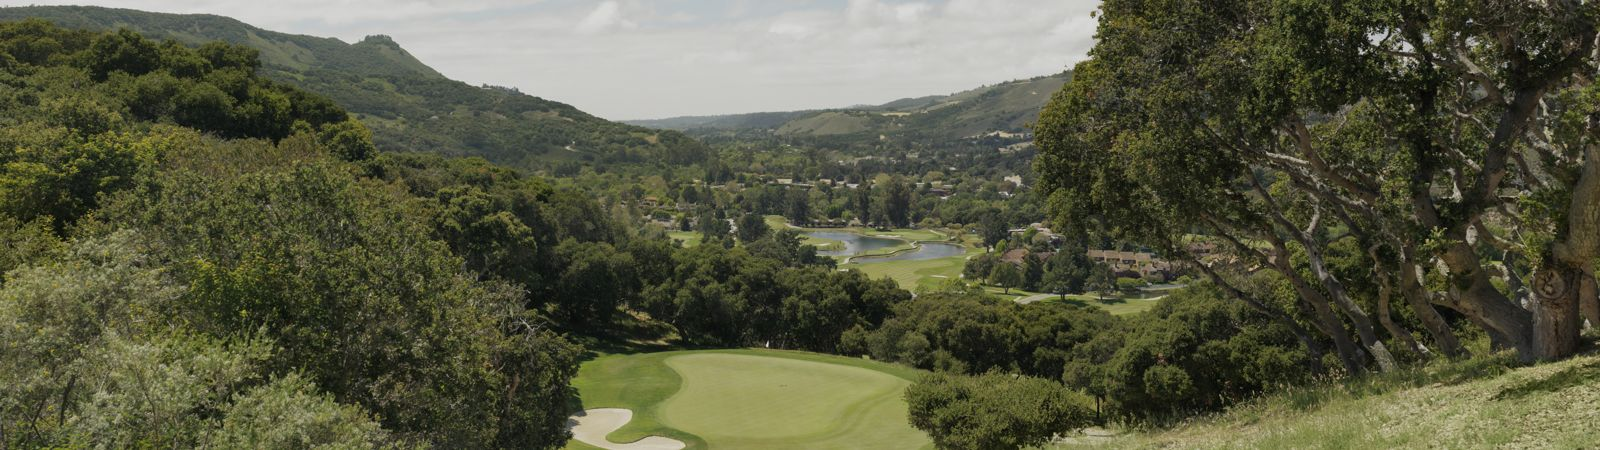 Carmel Valley Golf Course 01 THS0614